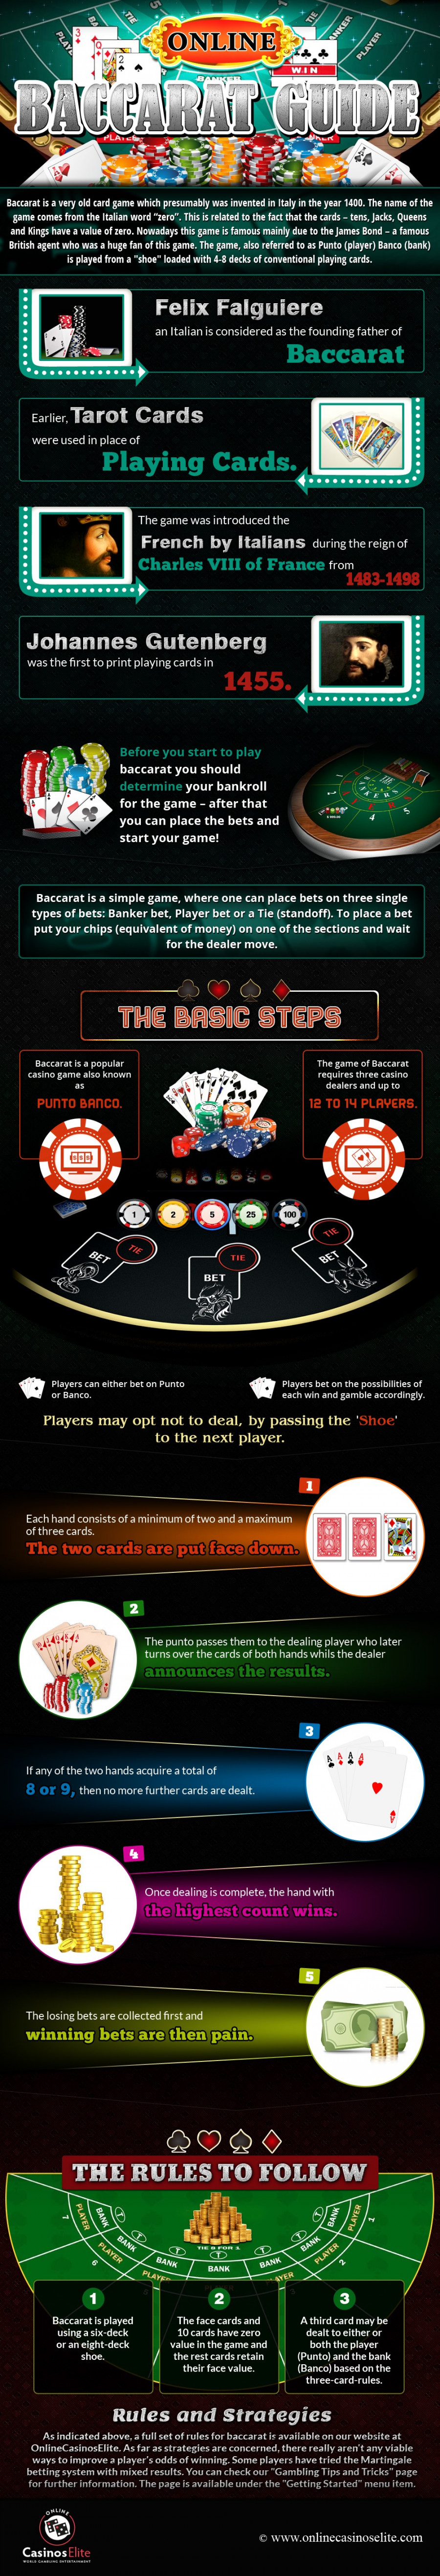 221539? w=900 - All About Online Baccarat Strategies - Which One's Best?